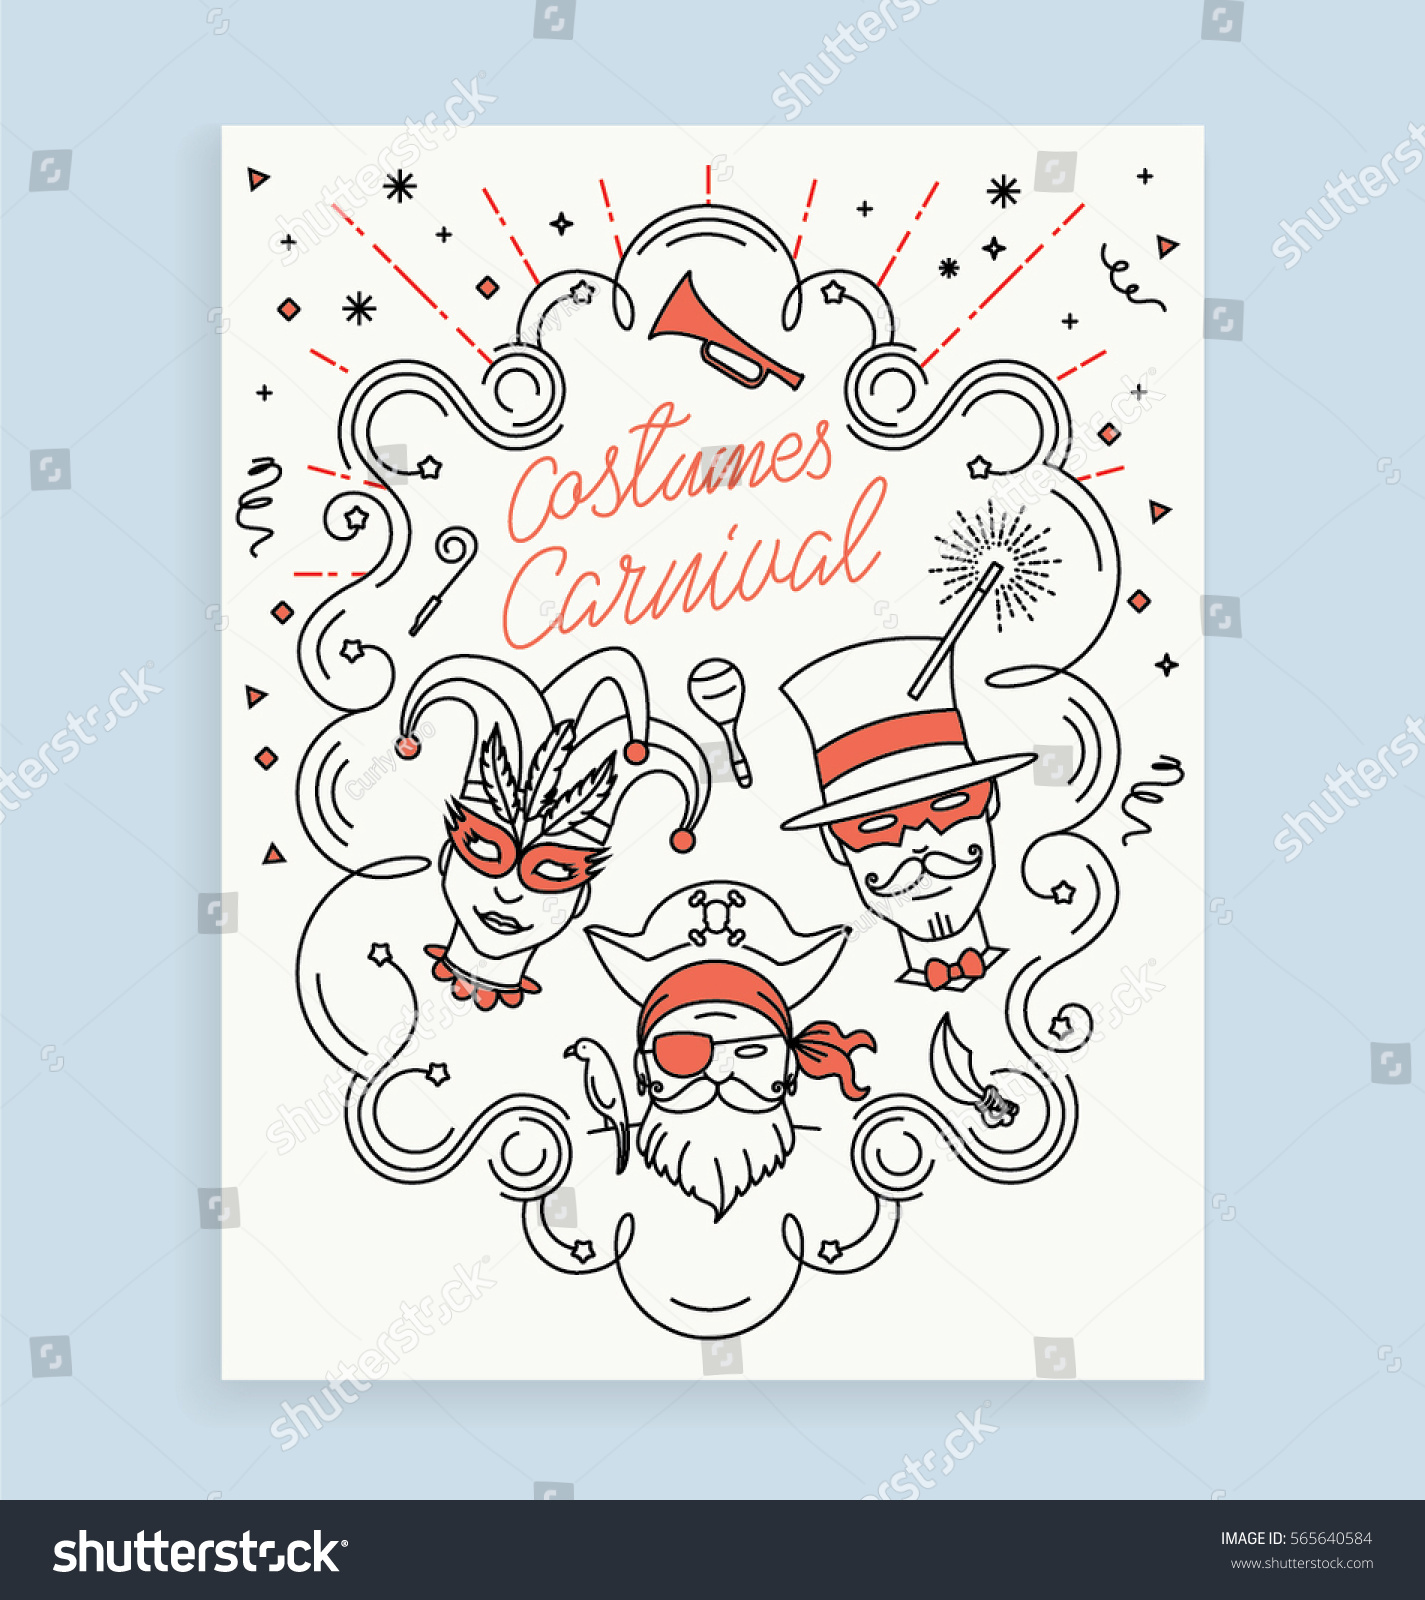 Line Art Card Design : Costumes carnival invitation card design iconic stock